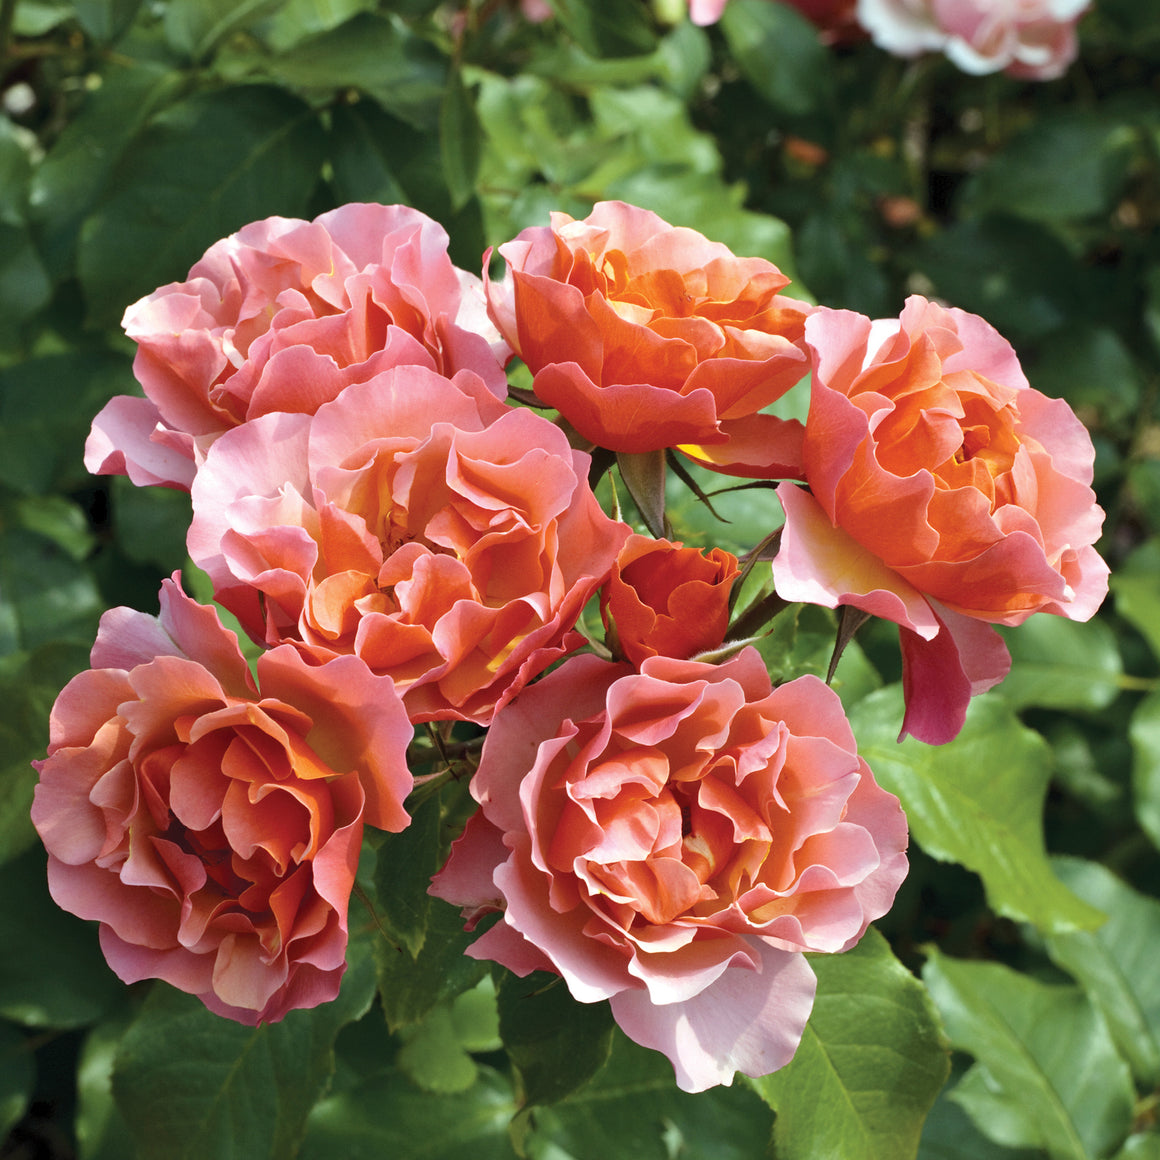 Rose 'Tequila Supreme'